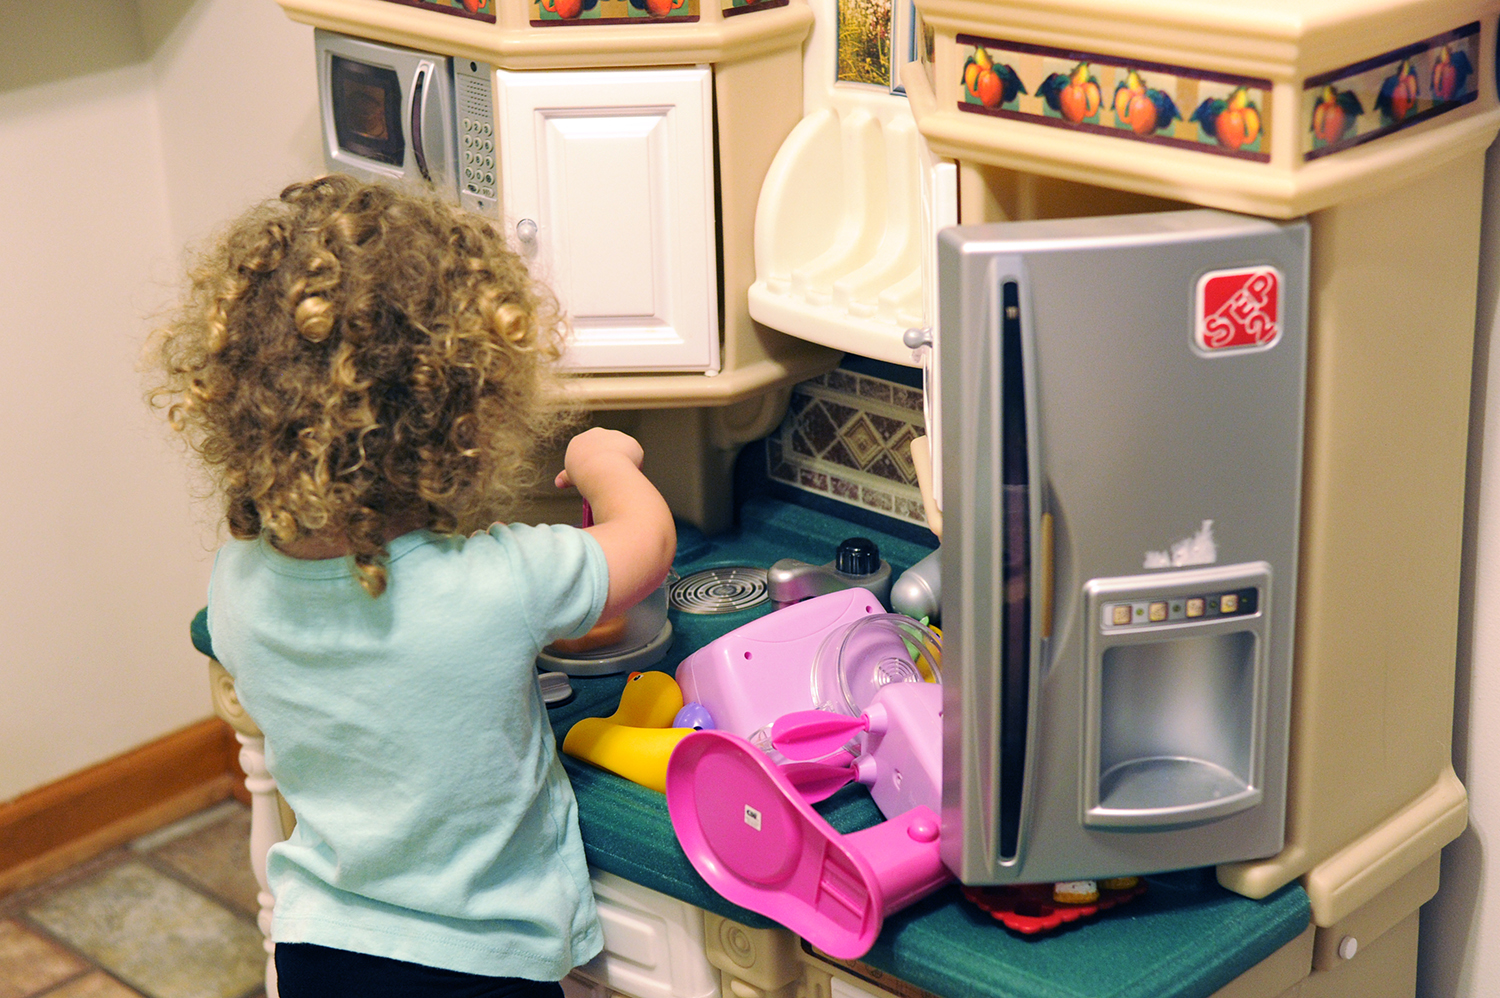 Michael Coblenz's 3-year-old daughter, Rebecca, plays with a toy kitchen set in their Squirrel Hill home. The Coblenz family recently replaced their lead water pipes. (Photo by Connor Mulvaney/PublicSource)